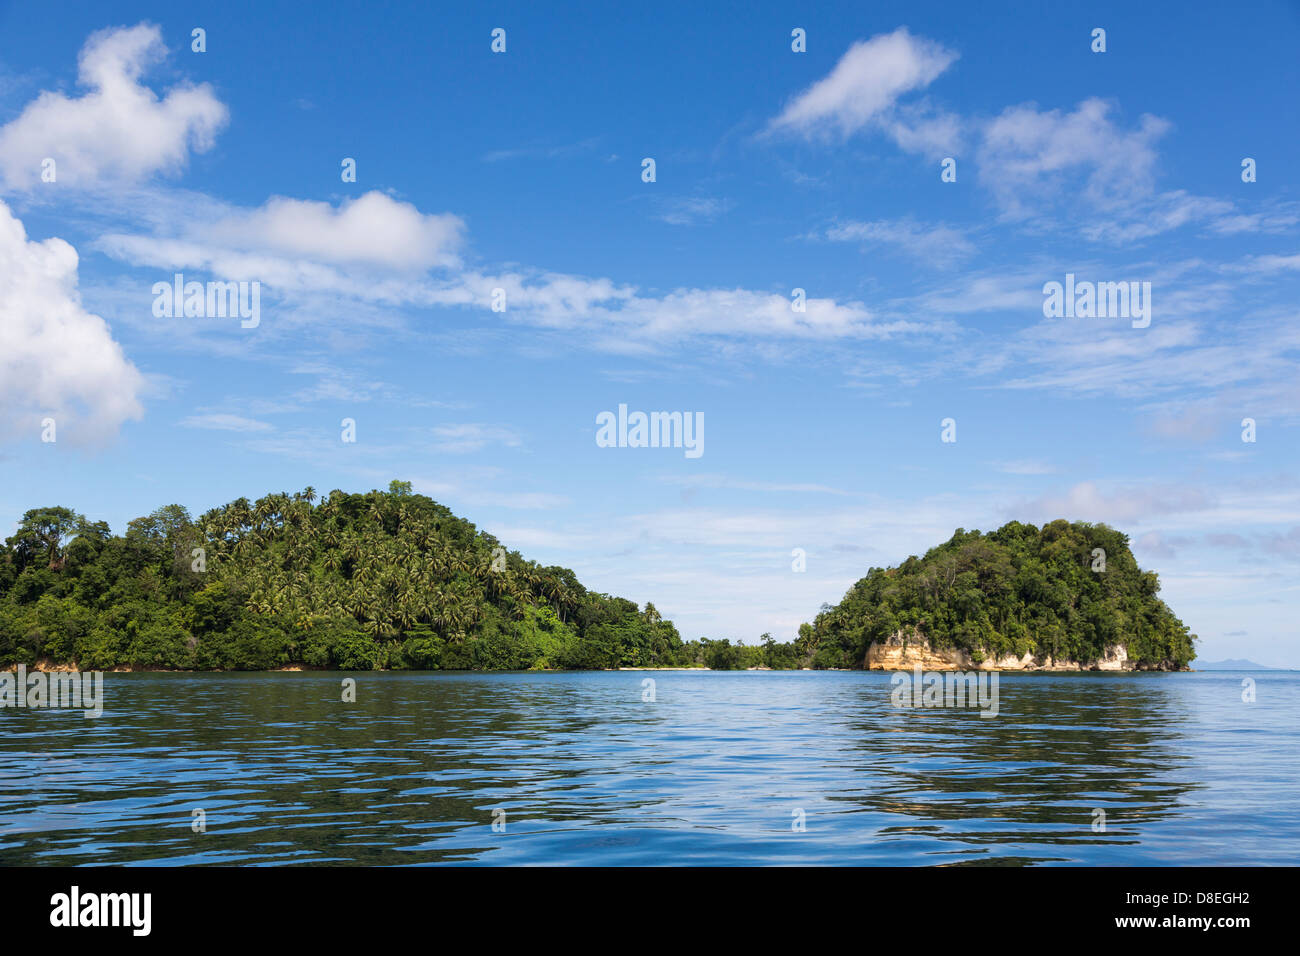 beach in the Togians island in Sulawesi, Indonesia - Stock Image